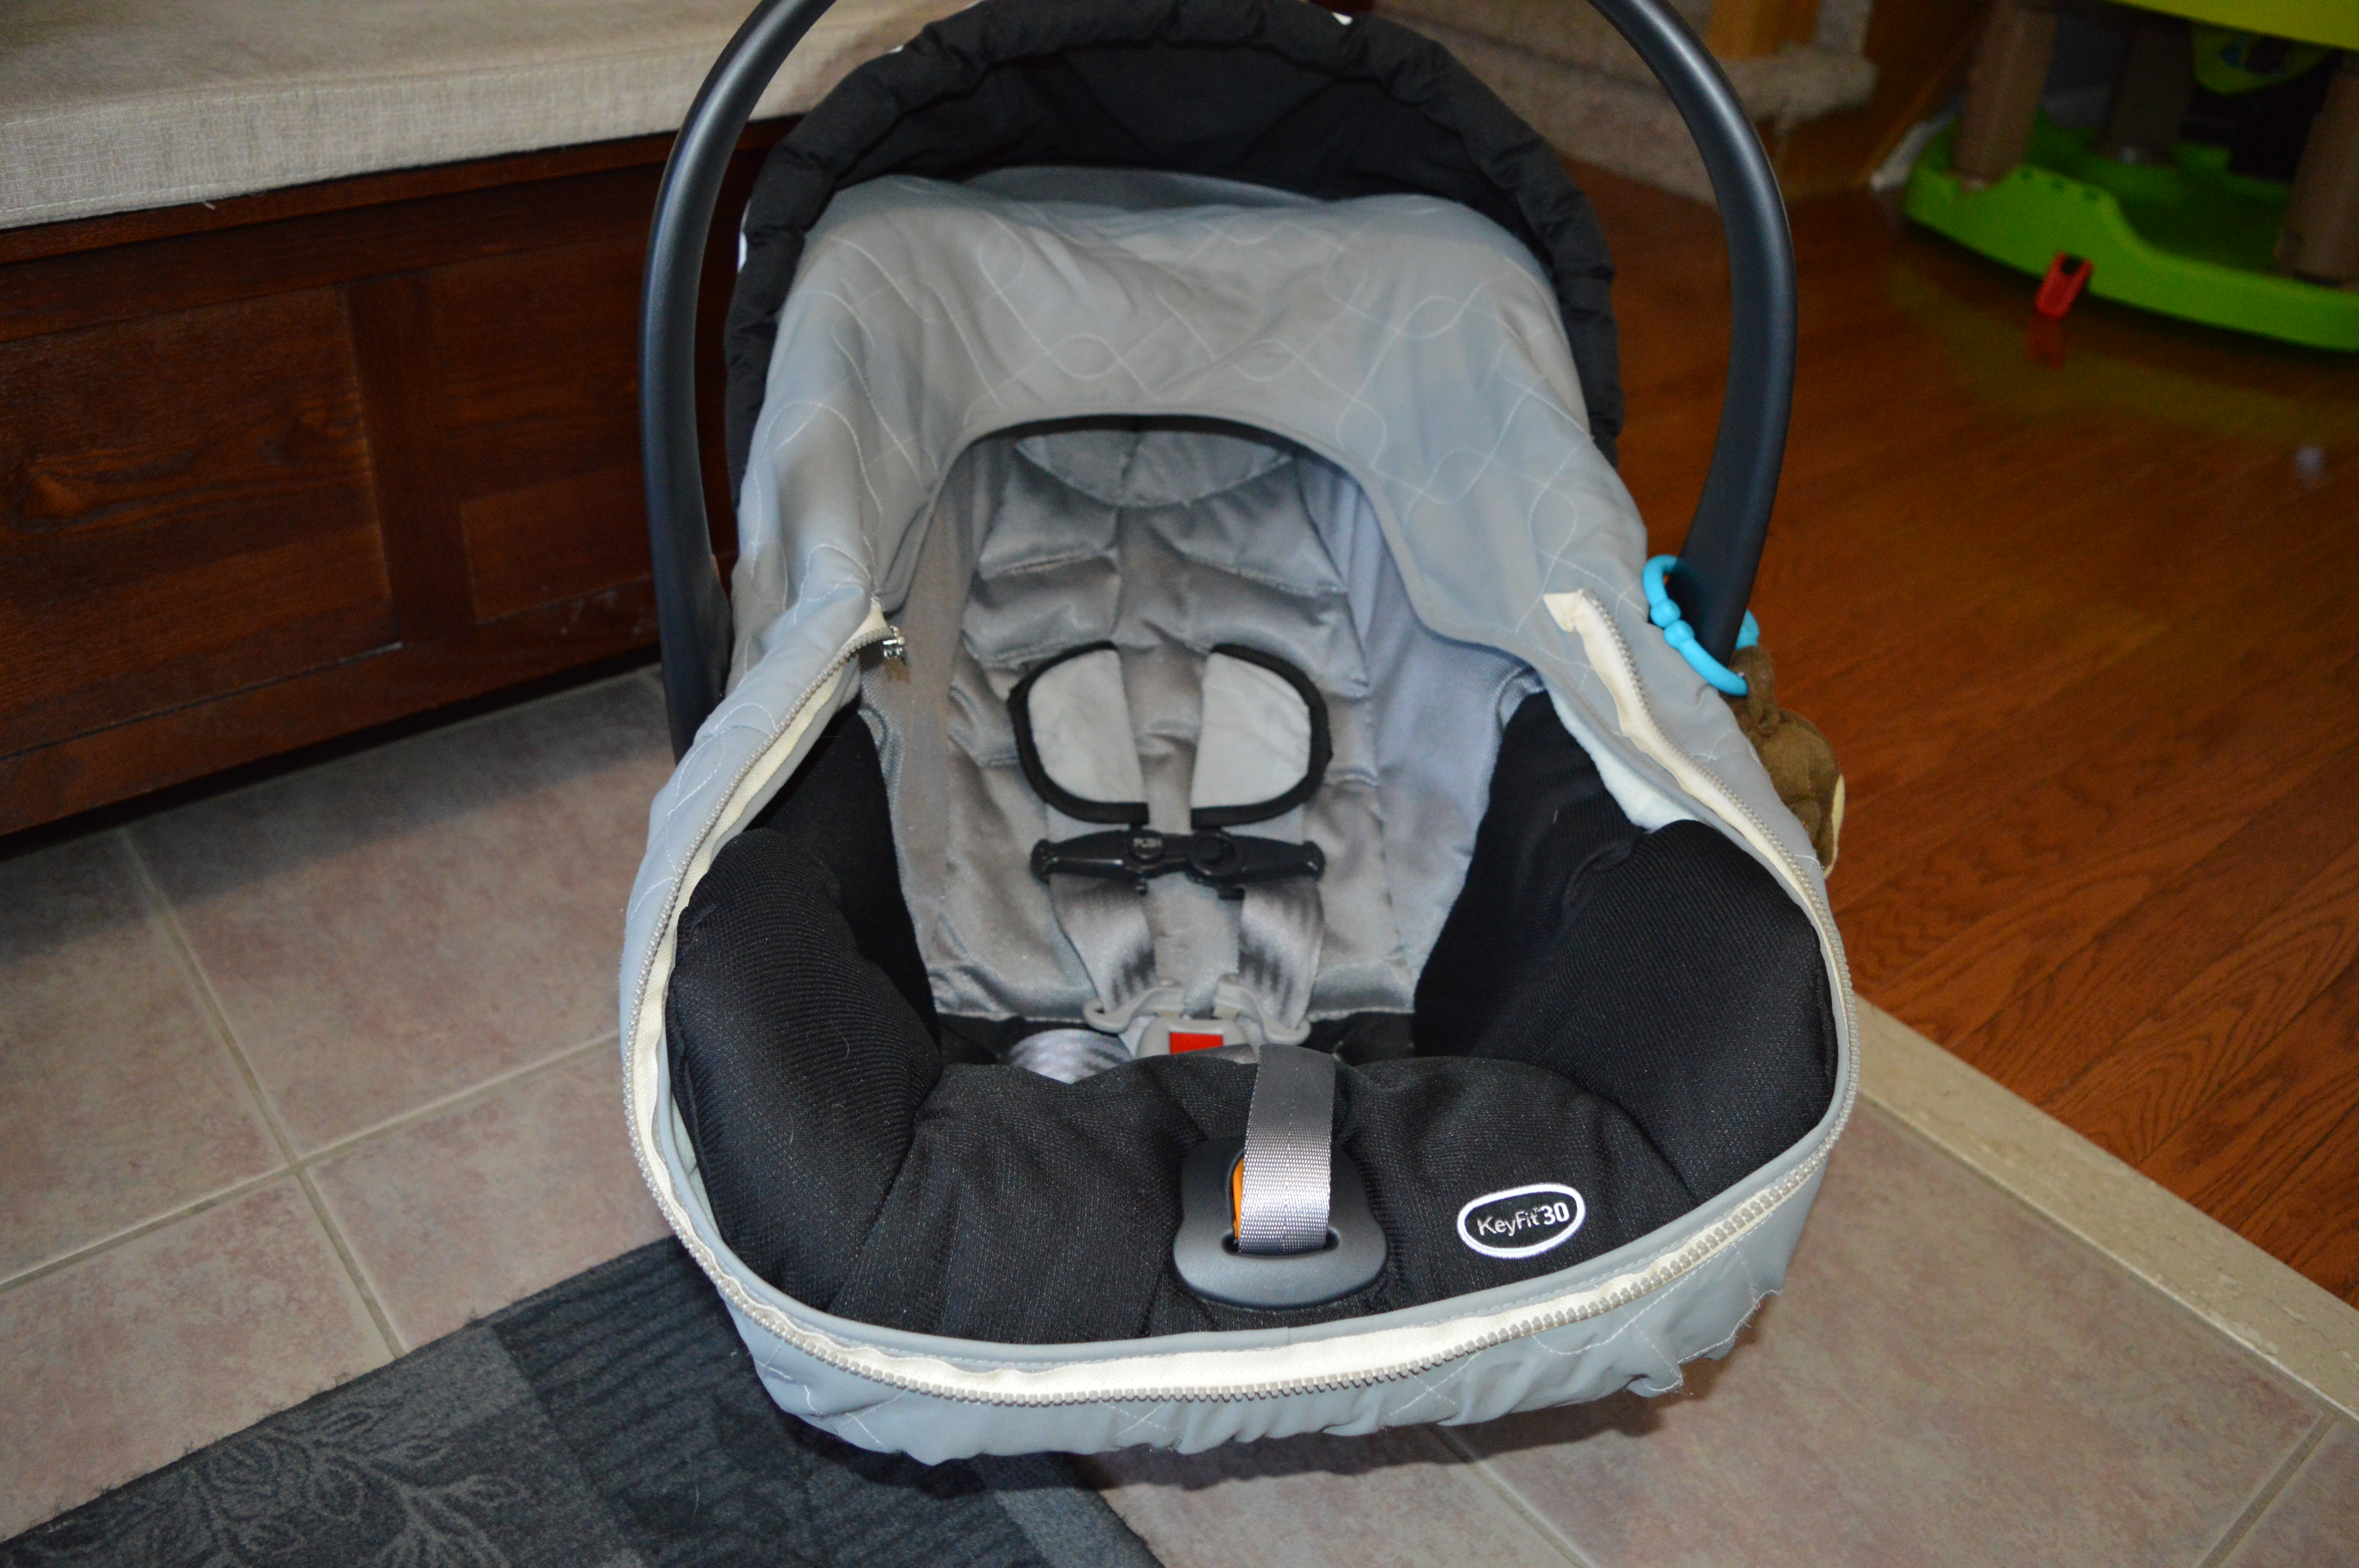 Baby bed like car seat - Here S The What The Chicco Keyfit30 Looks Like We Re Also Using The Jj Cole Bundle Me Car Seat Cover Which Has Kept Nate Nice And Toasty In The Bitter Cold